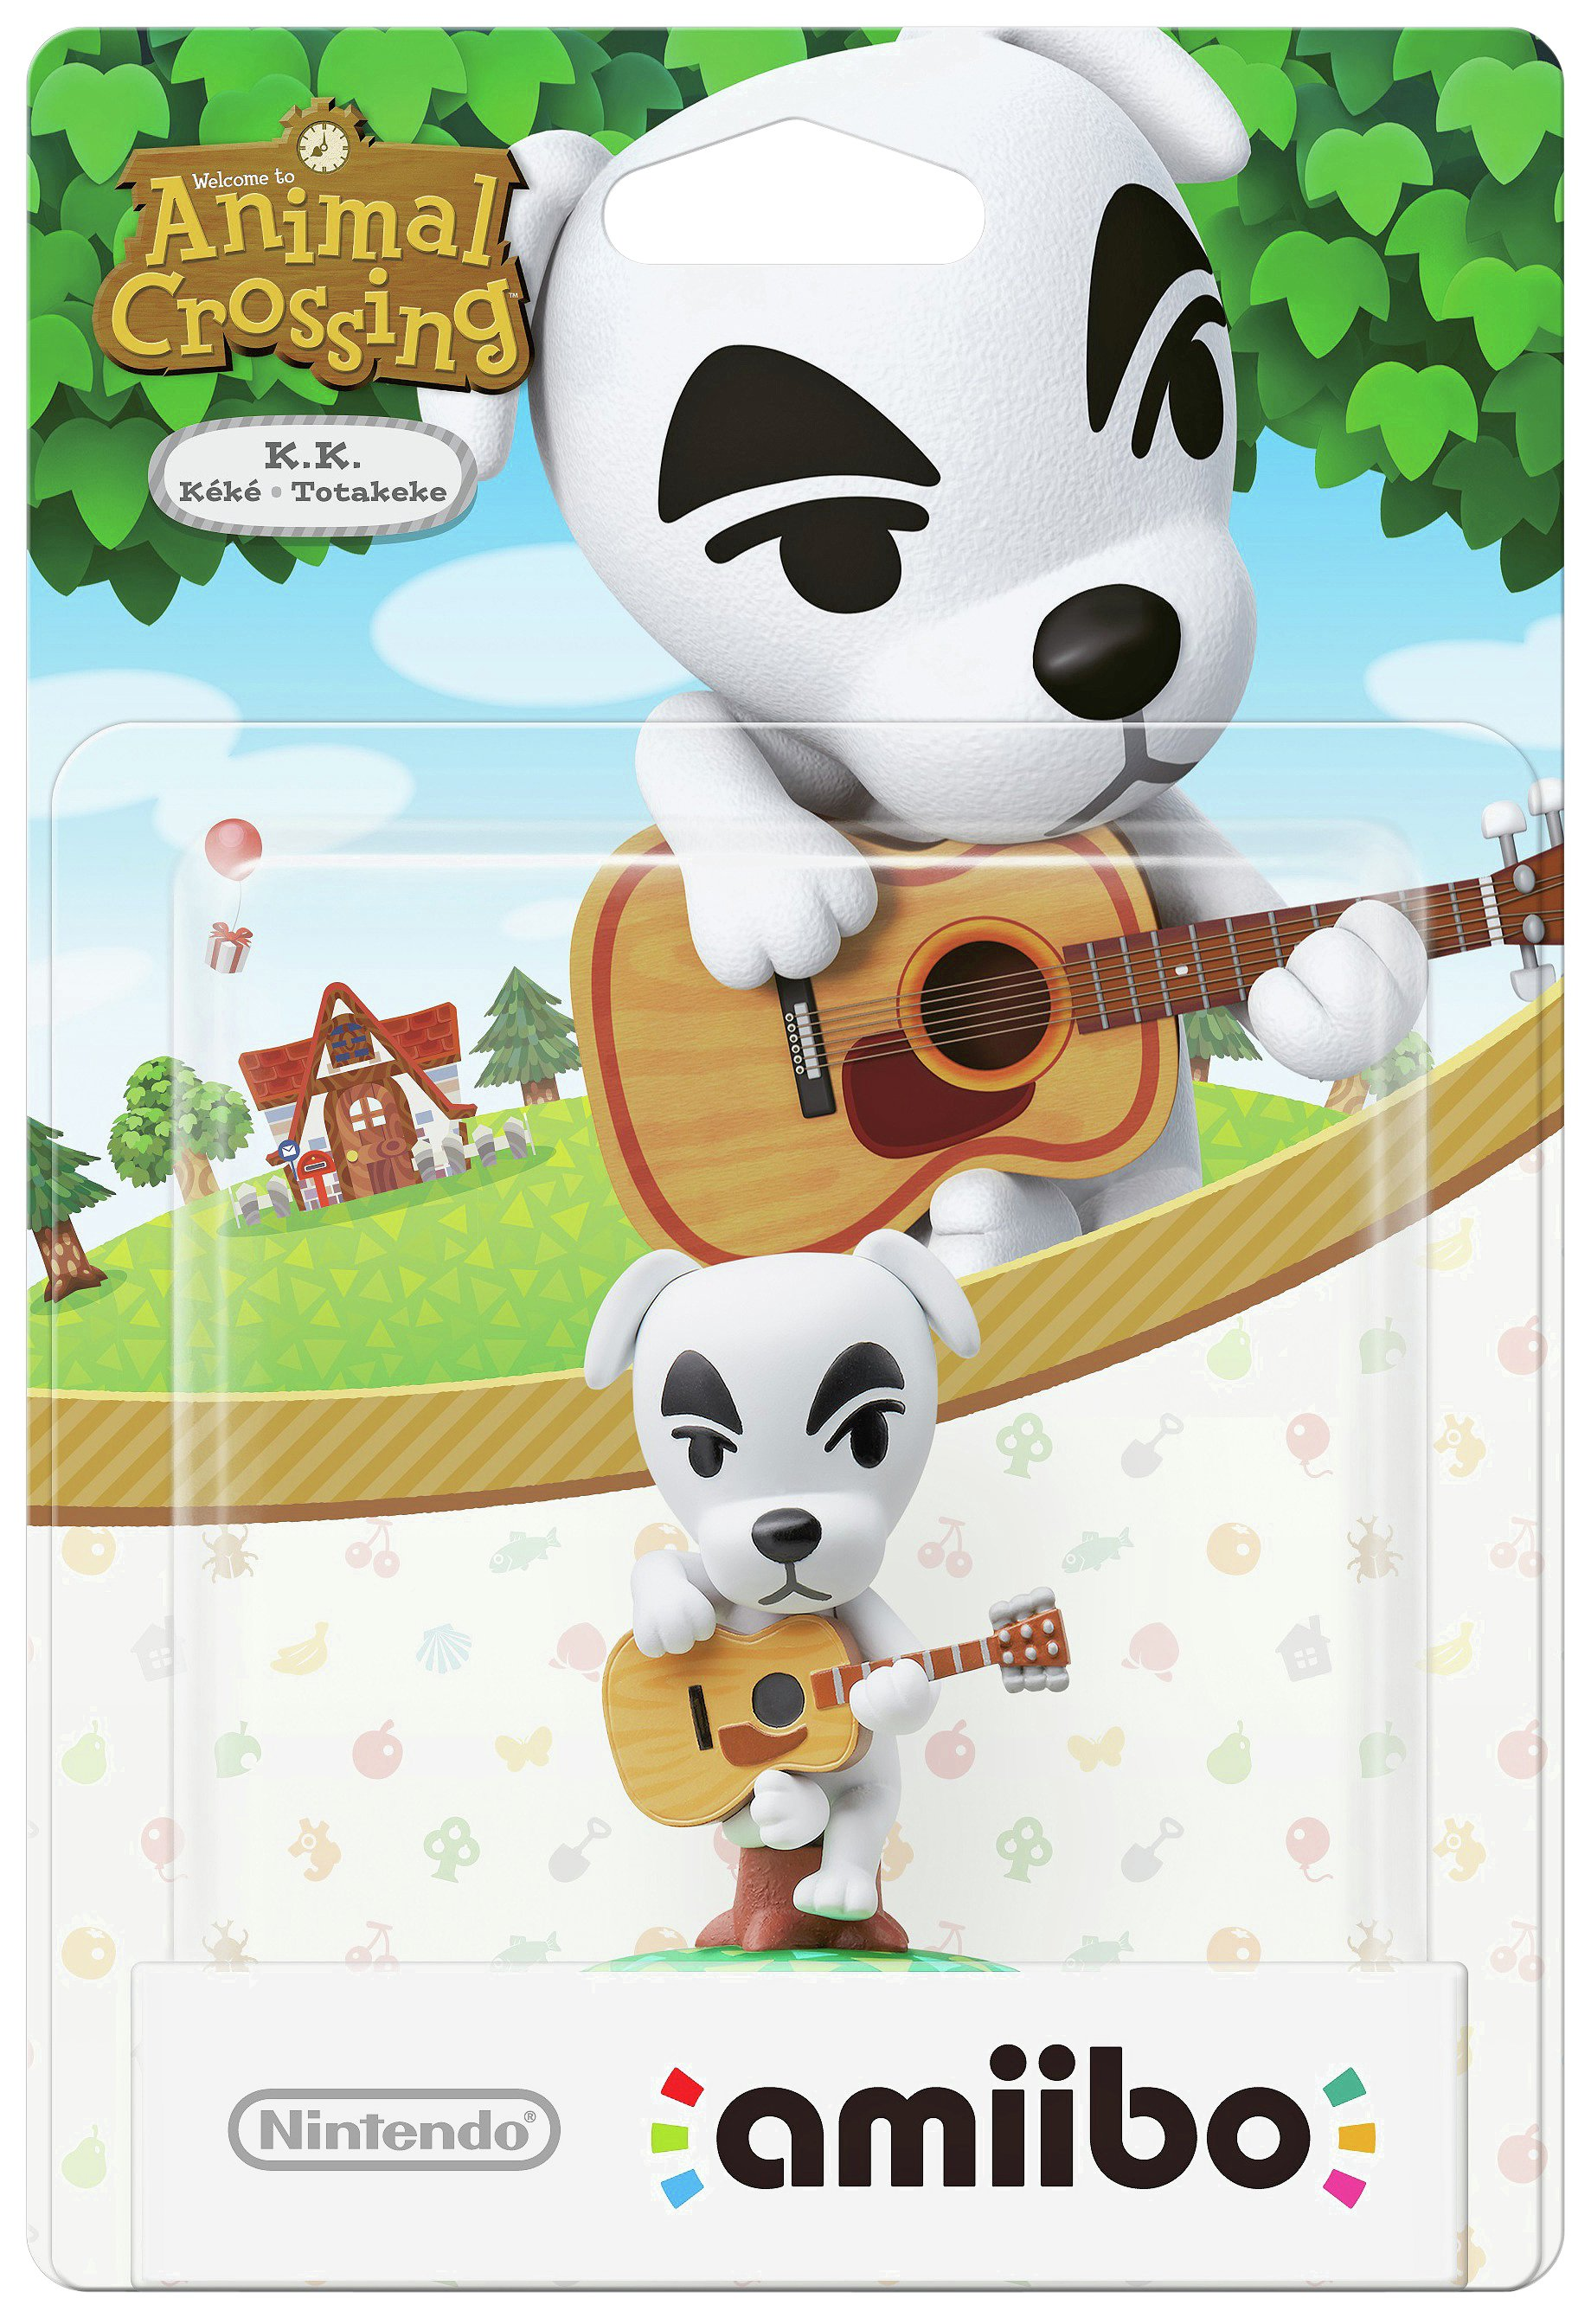 Image of amiibo Animal Crossing Figure - K.K. Slider